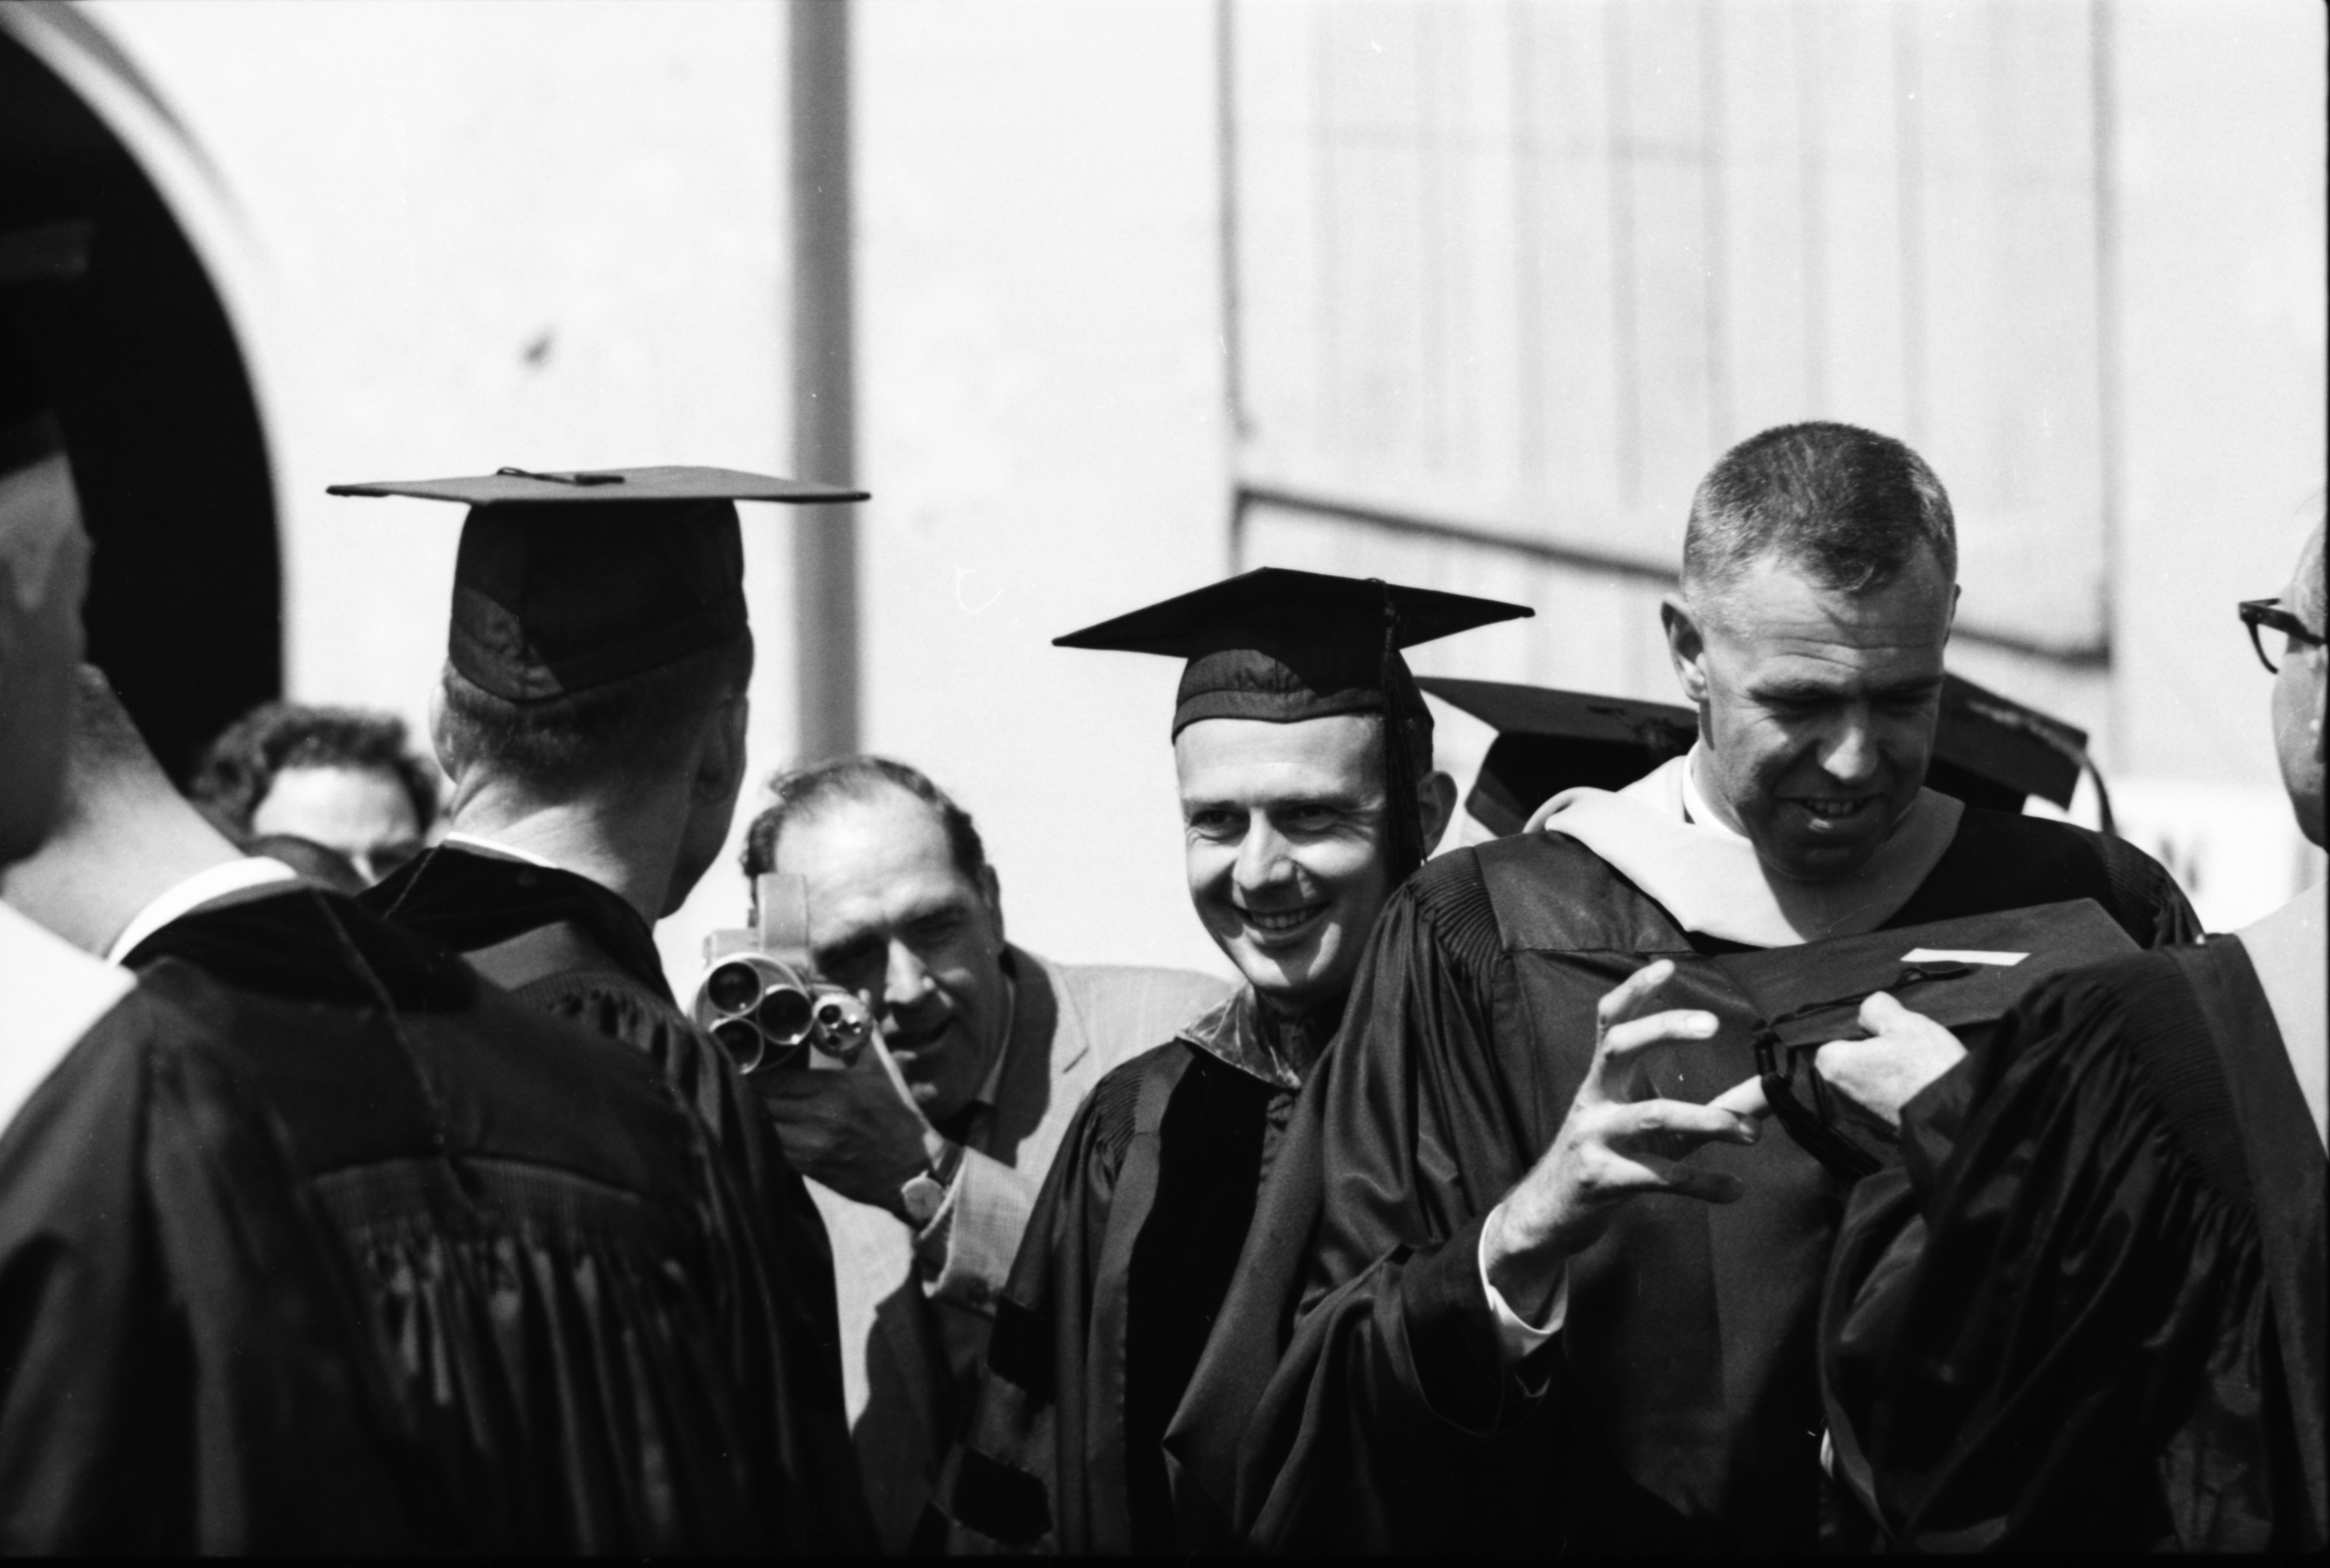 Astronauts James A. McDivitt and Edward H. White at Convocation, June 15, 1965 image